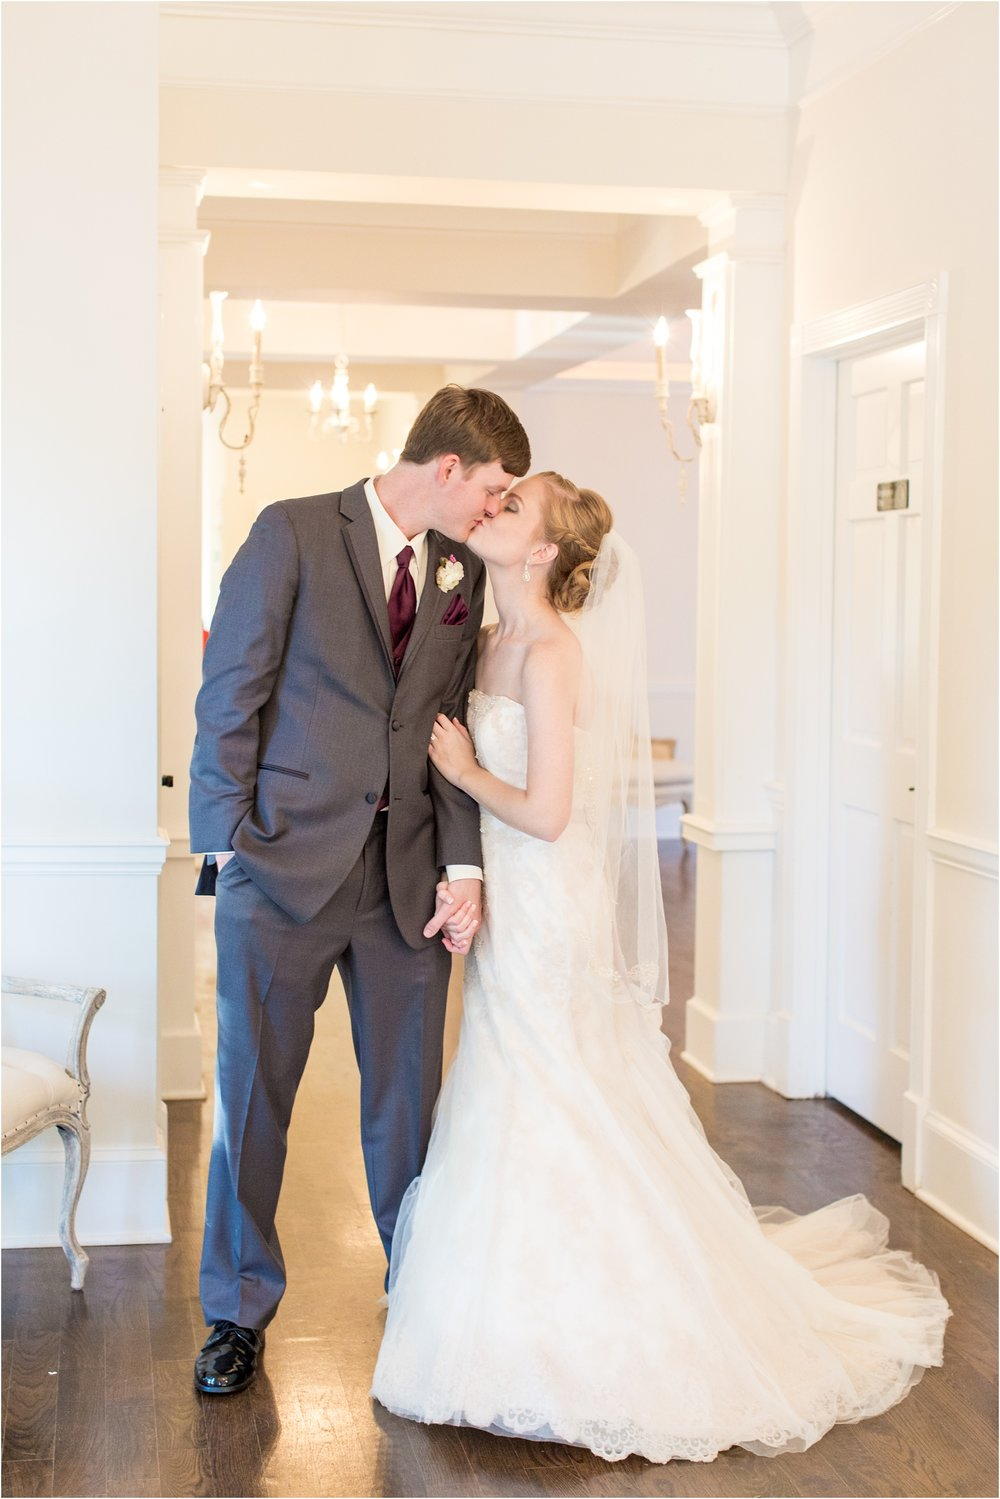 Savannah Eve Photography- Perkins Wedding- Blog-19.jpg